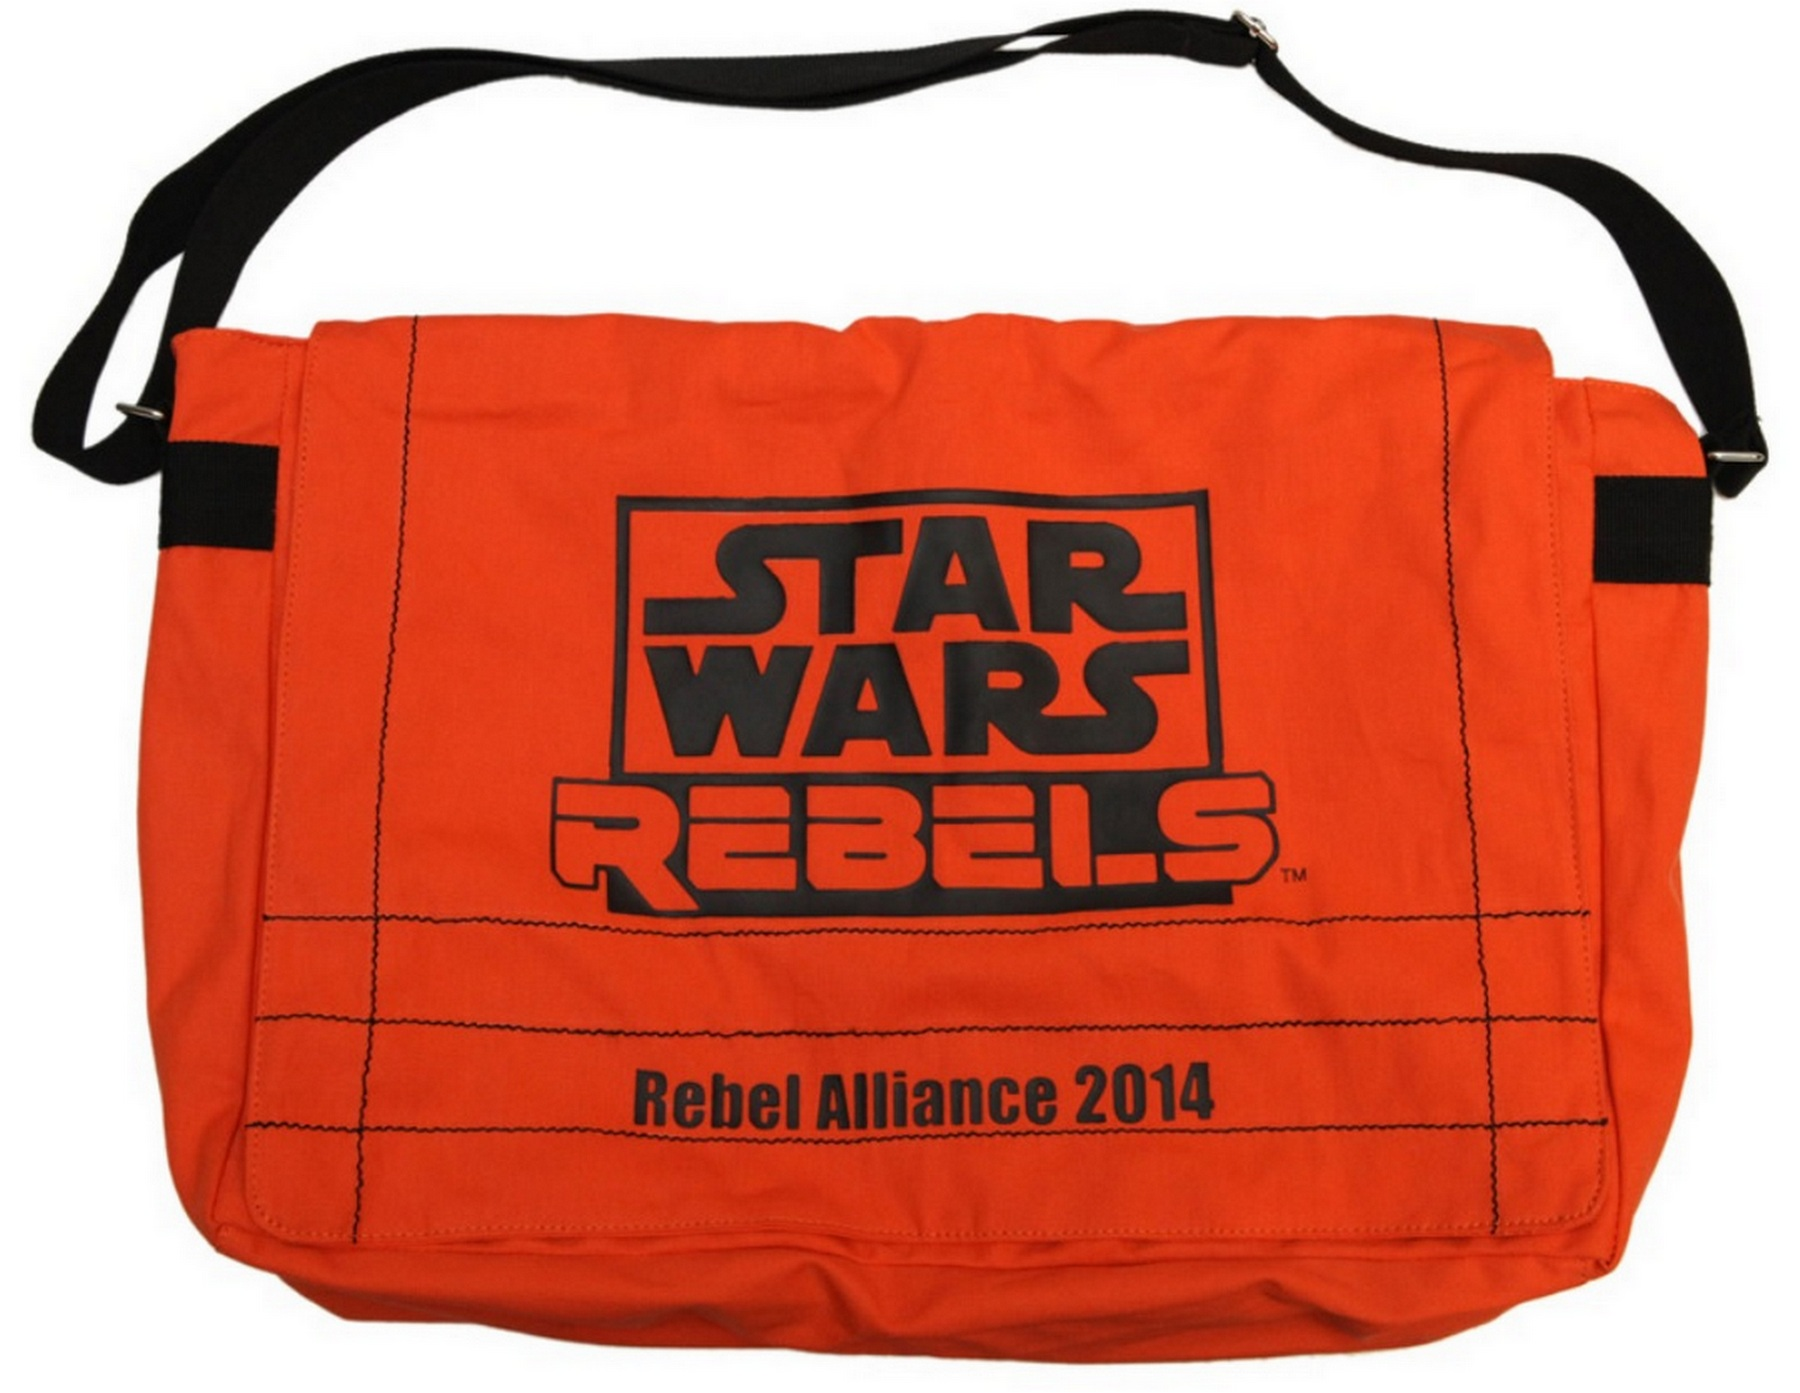 Limited Edition Star Wars REBELS Recruitment Pack Messenger Bag ~ Disney Star Wars Weekends 2014